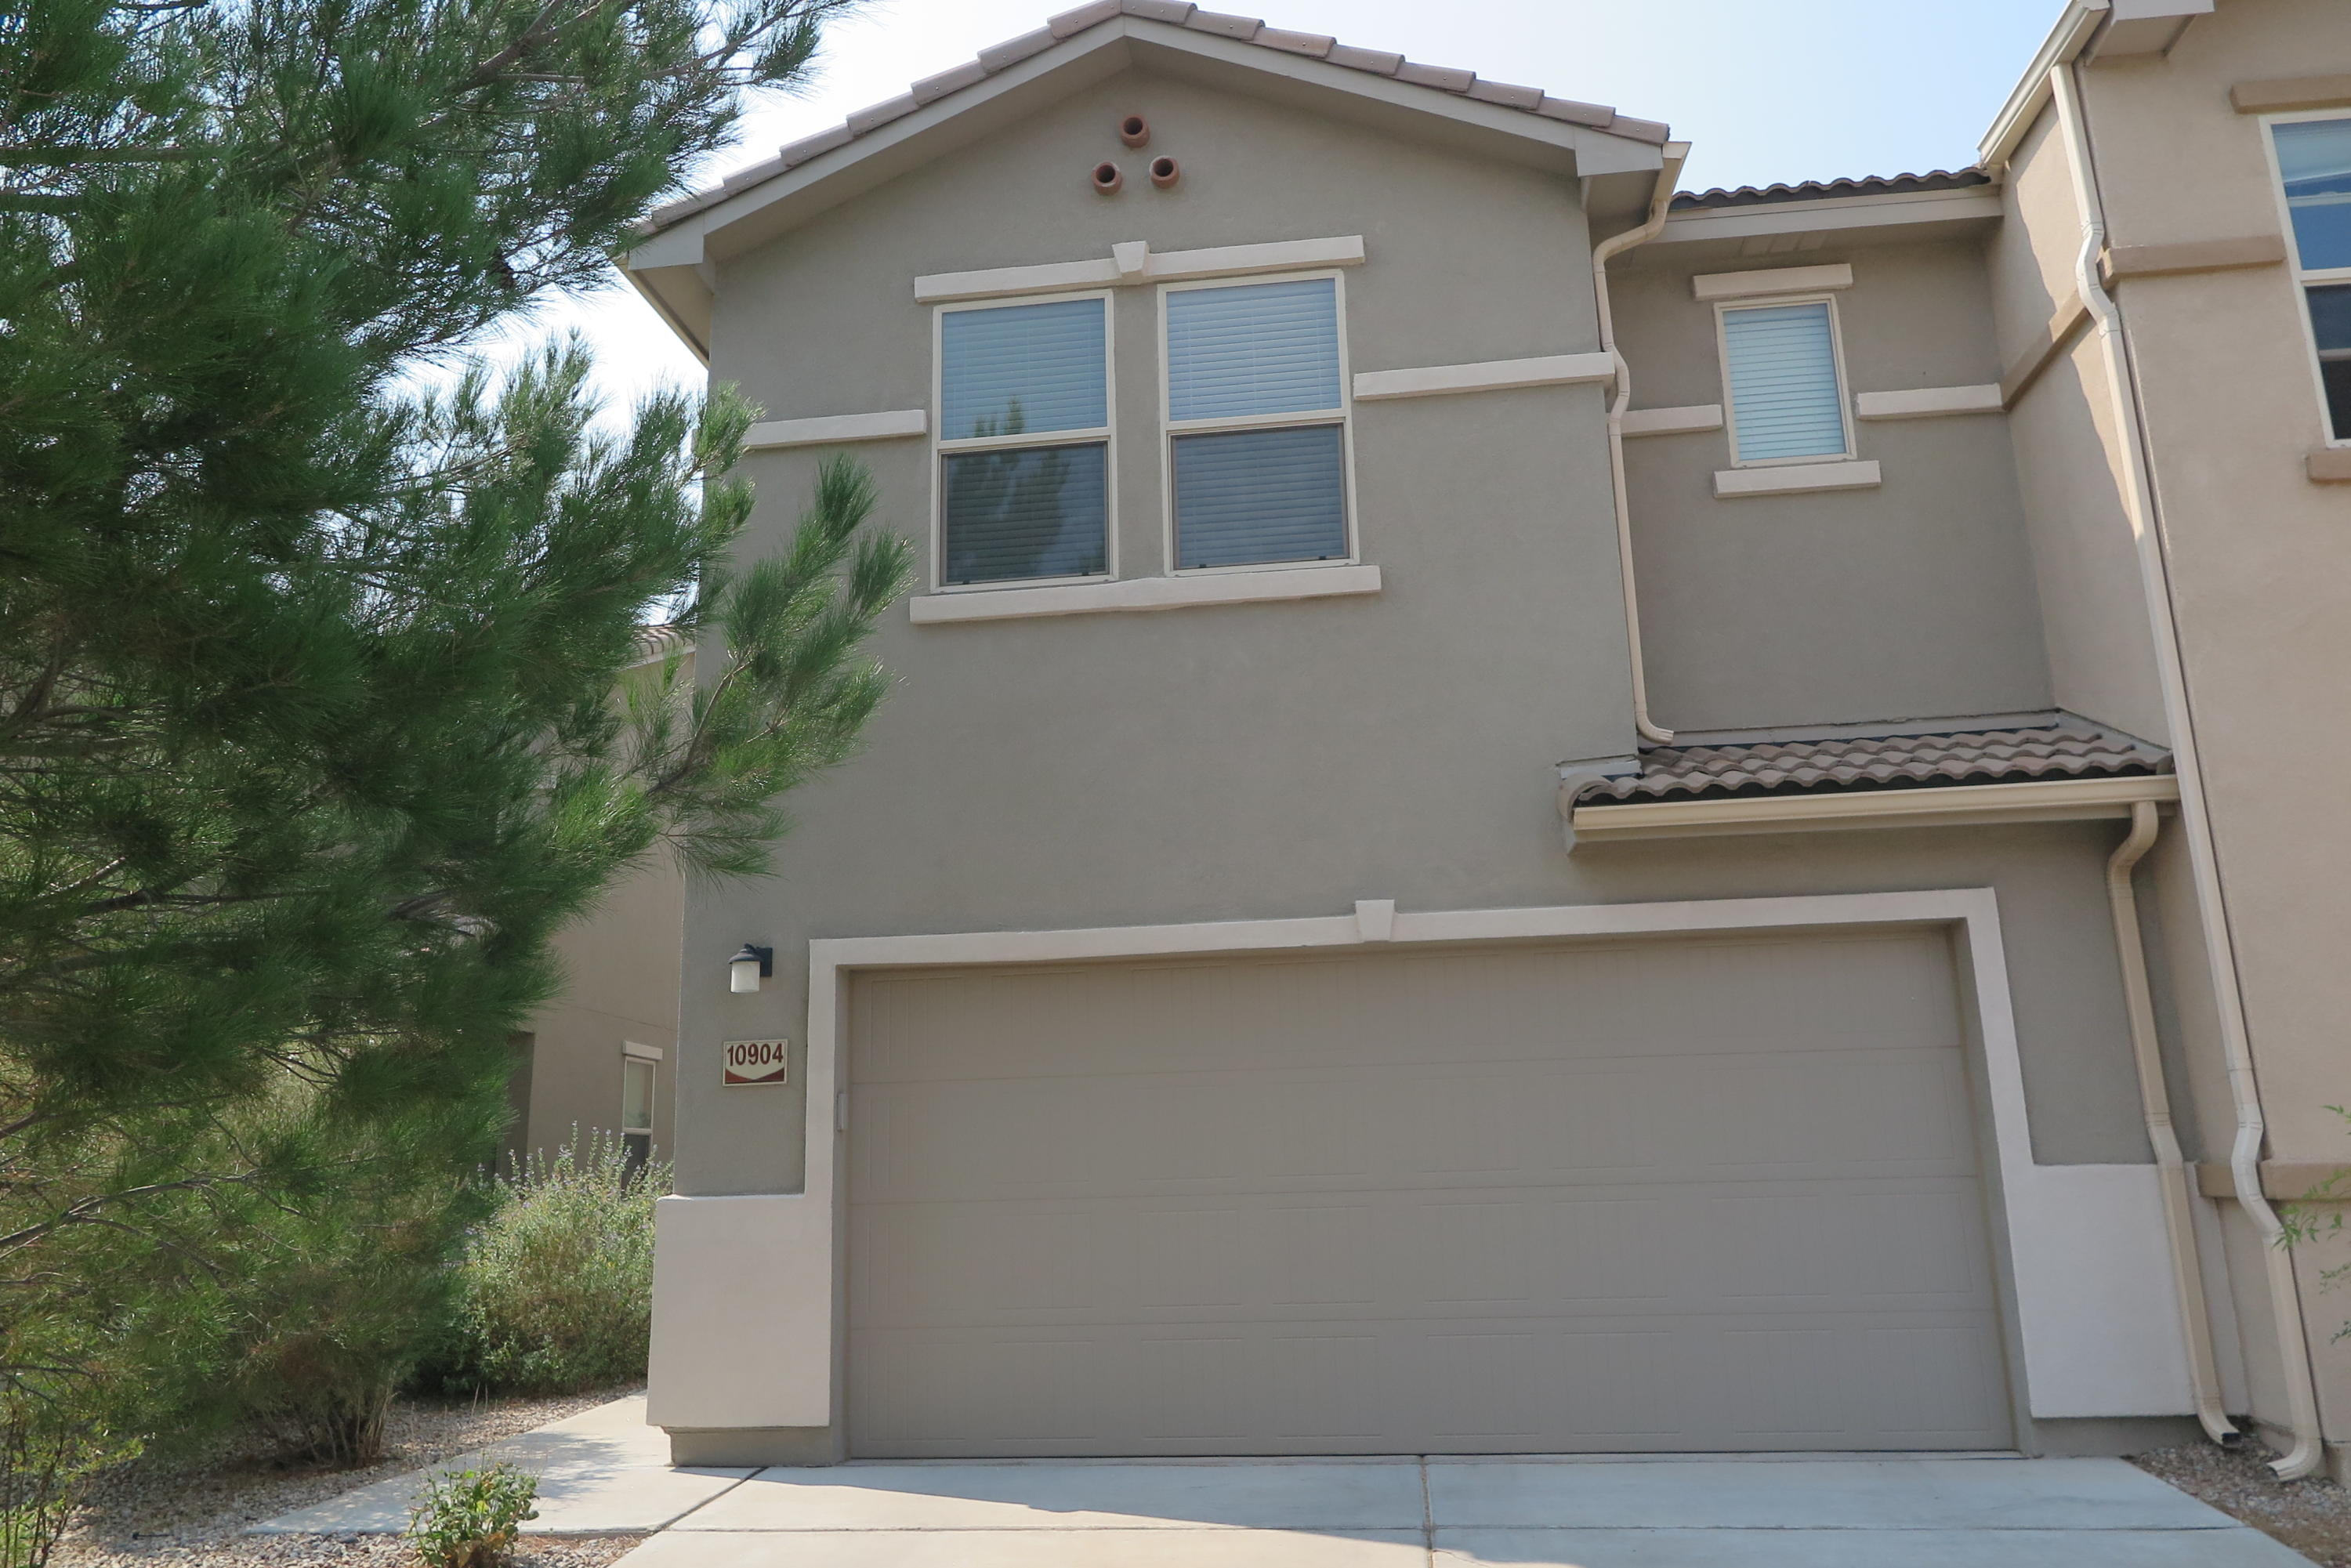 Wonderful 2 level town home, modern and maintenance free in gated community near Kirtland, Sandia and I-40. 2 living areas, one up other down. Ceramic tile floors lower level and wood laminate floors up. Large bedrooms, master with French doors, huge walk in closet & bath w/garden tub, sep shower and double sinks. Beautiful kitchen with Brk bar, pantry, stainless appliances (all stay) and tile floors & backsplash., all open to living area. Nite lights throughout, custom lighting, ceiling fans, linen closets, surround sound hookup, newer paint, Sep utility room  (washer/dryer stay). 1/2 Bath lower level and small foyer. Attached 2 car garage,  Nice yards, rear with turf and open patio. Super nice & modern design and touches.